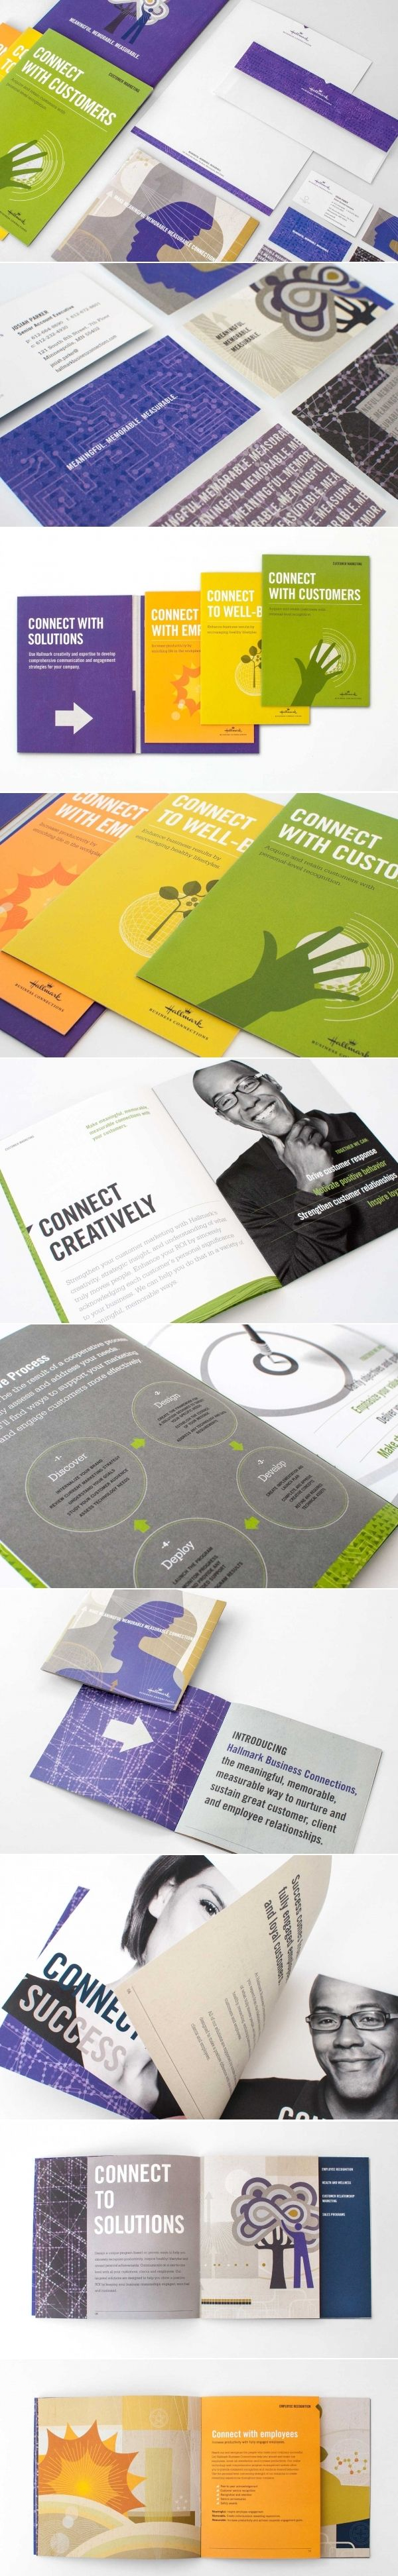 Hallmark Business Connections | Art Direction, Branding, Business Collateral, Copywriting, Design, Marketing Materials, Trade Show | Design Ranch